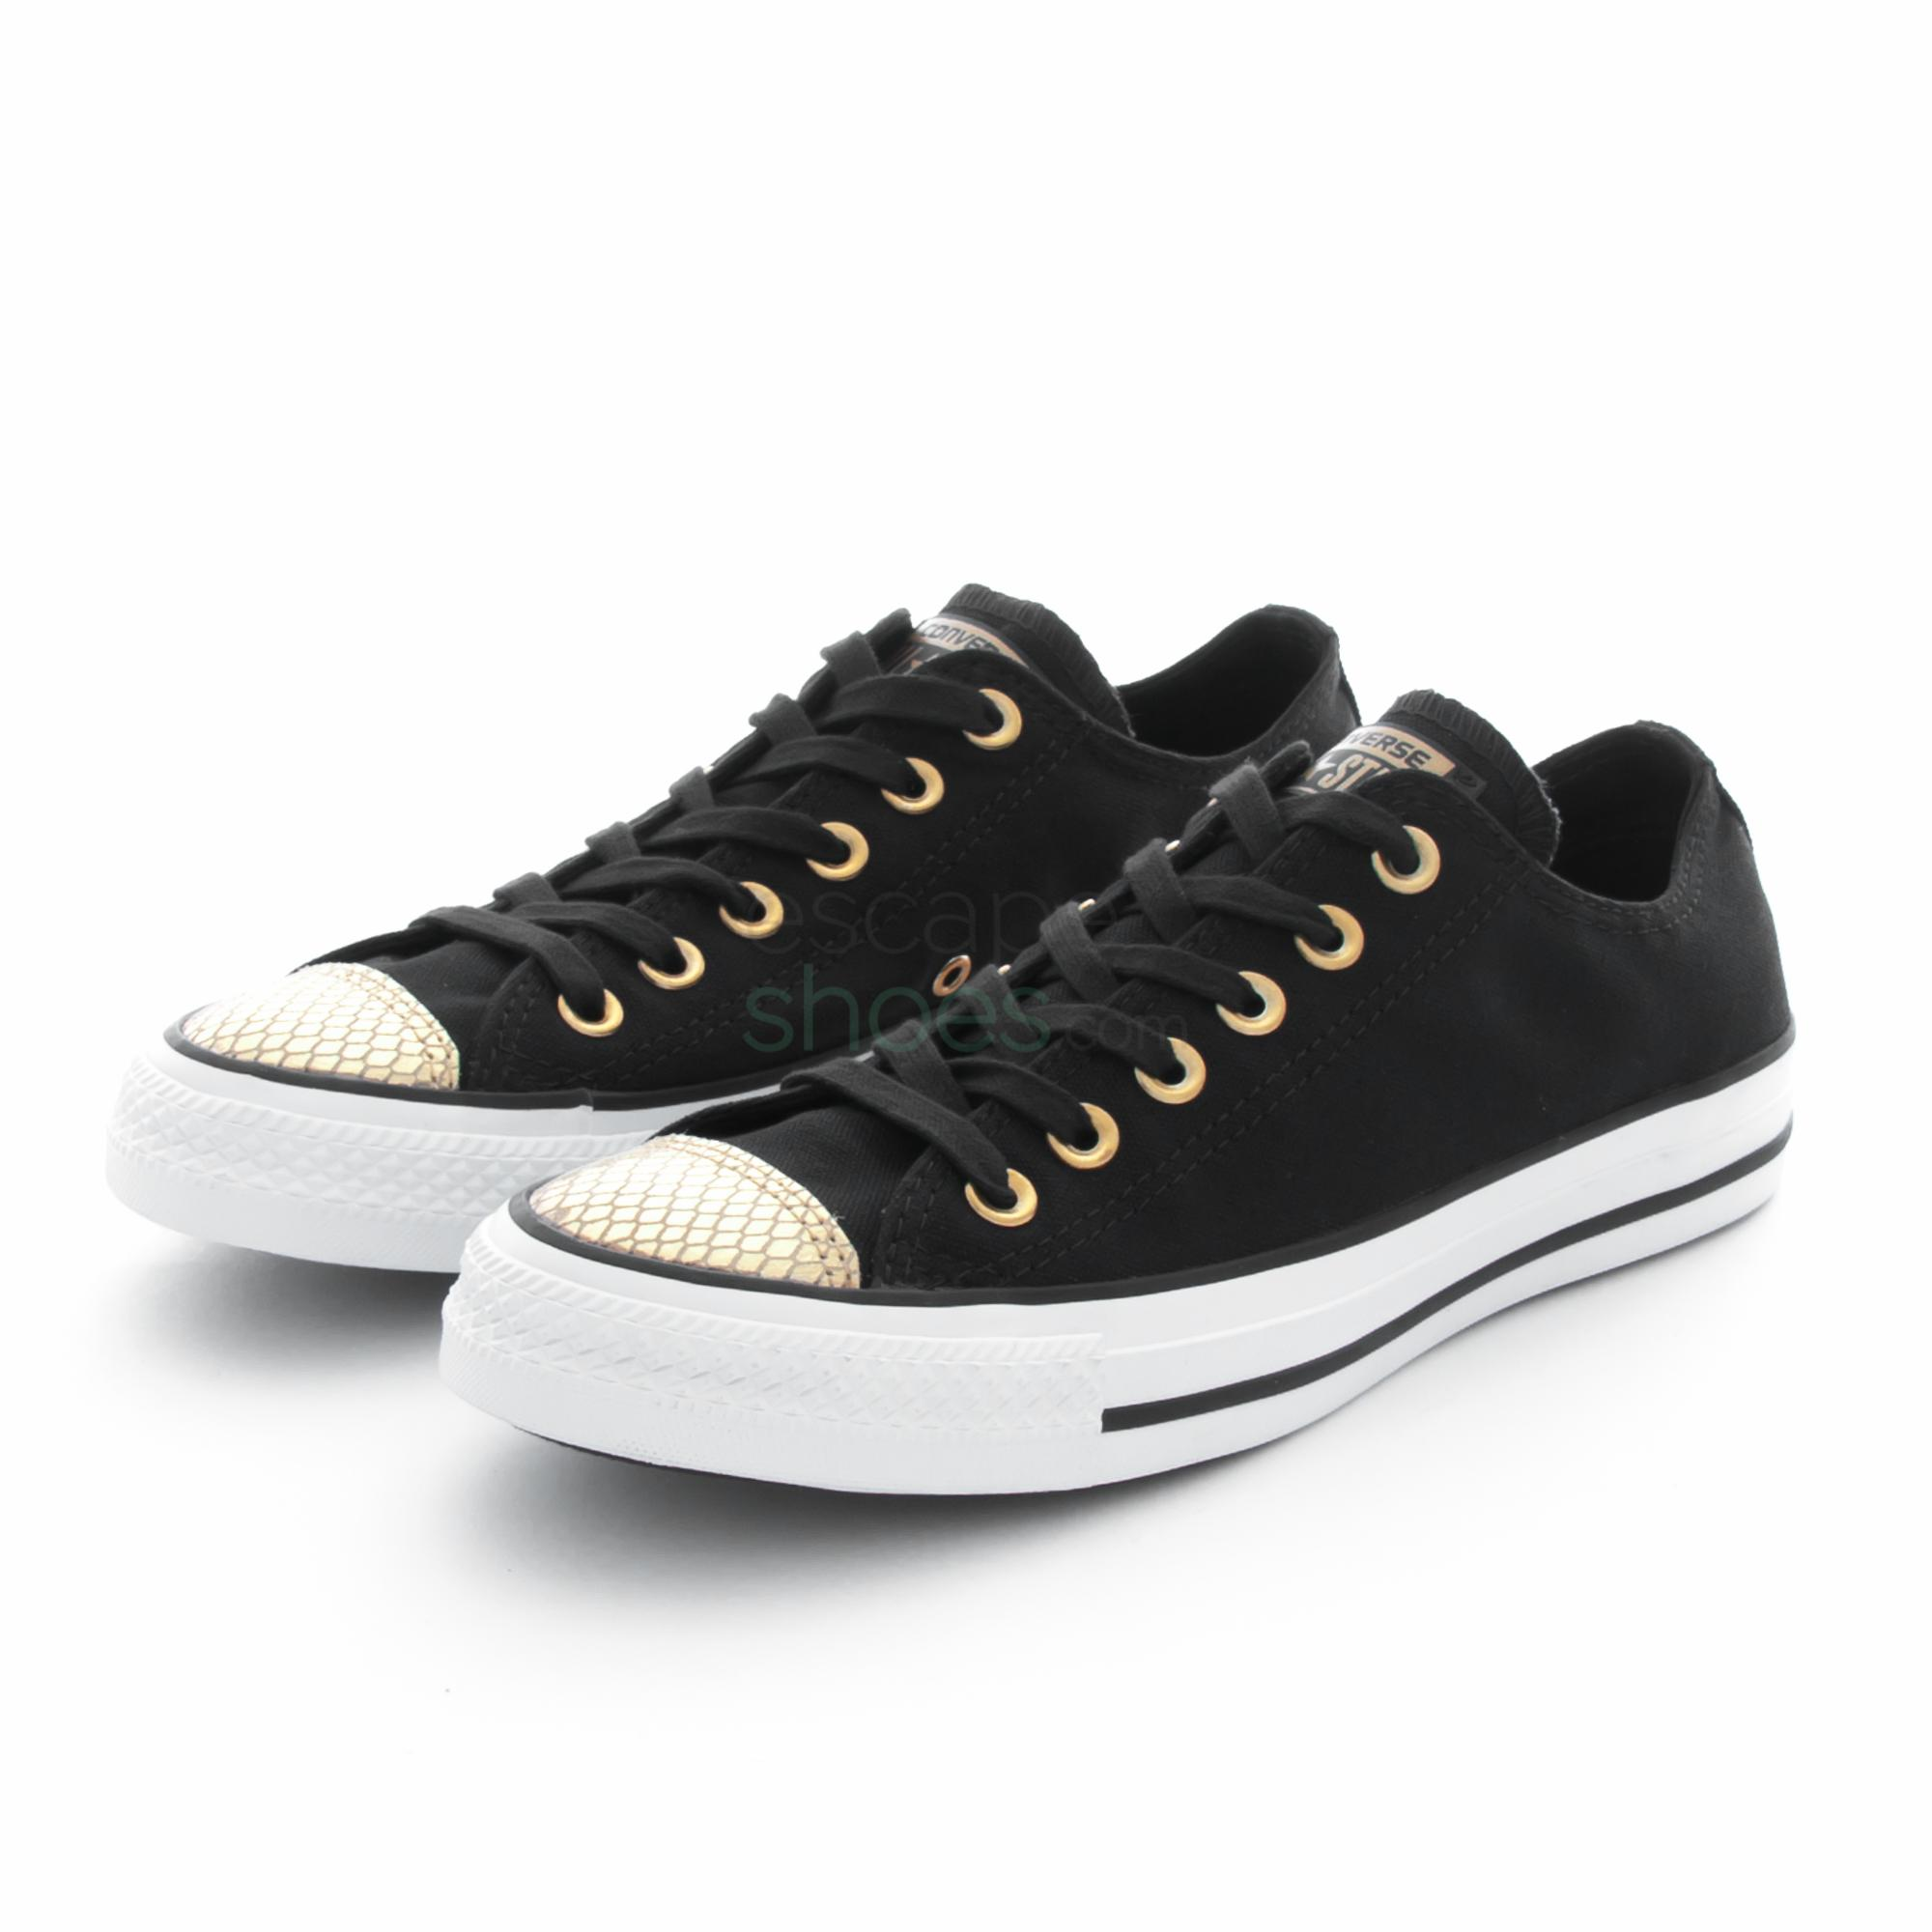 c85edca5fe638 Buy your Sneakers CONVERSE Chuck Taylor All Star 555815C Black Gold ...